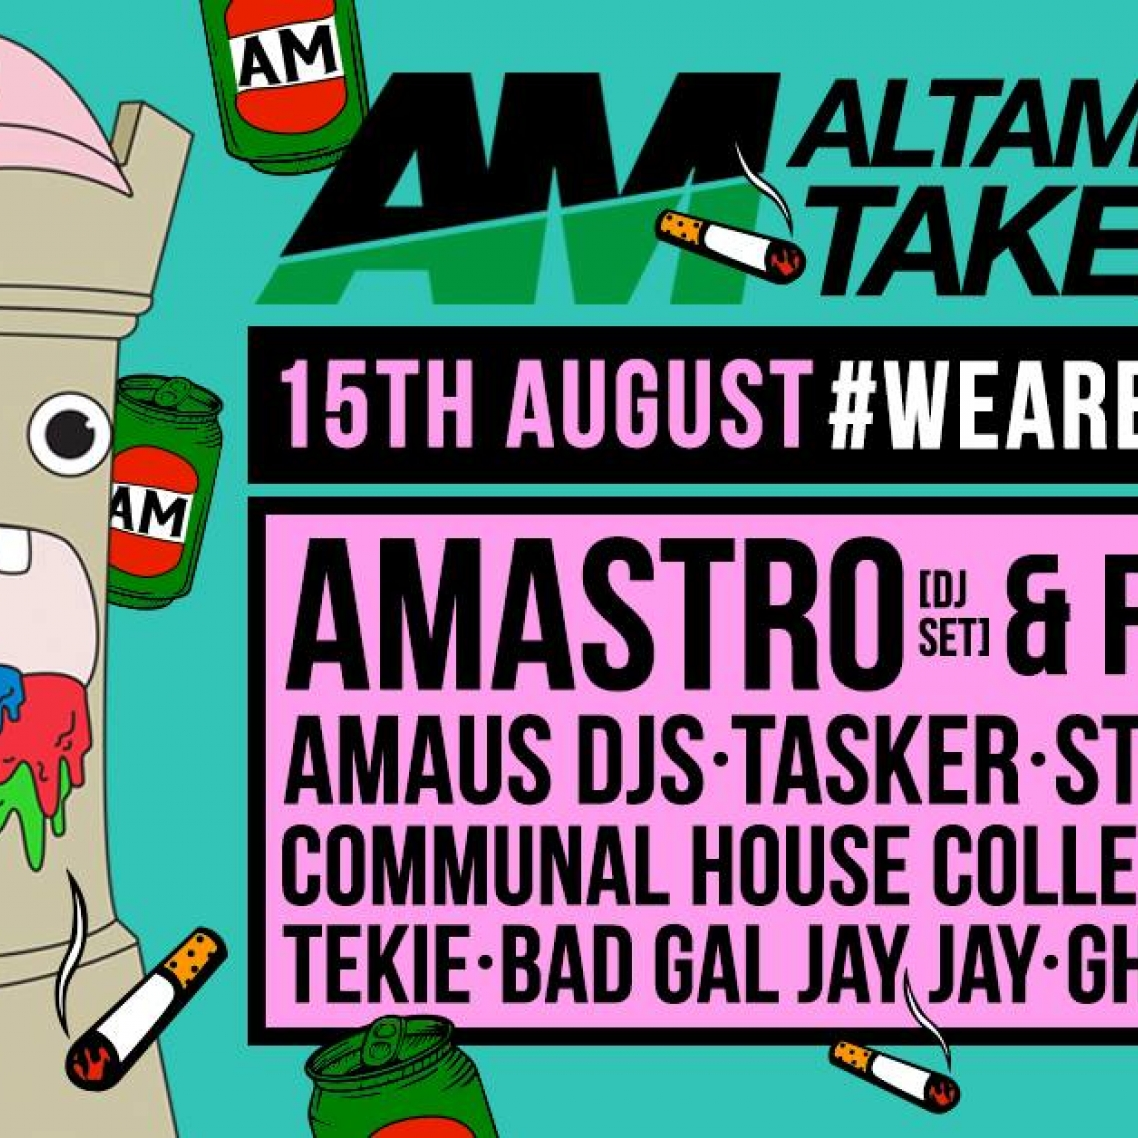 Bad Dj Set The Wall Ft Amastro Dj Set Friends At World Bar August 15